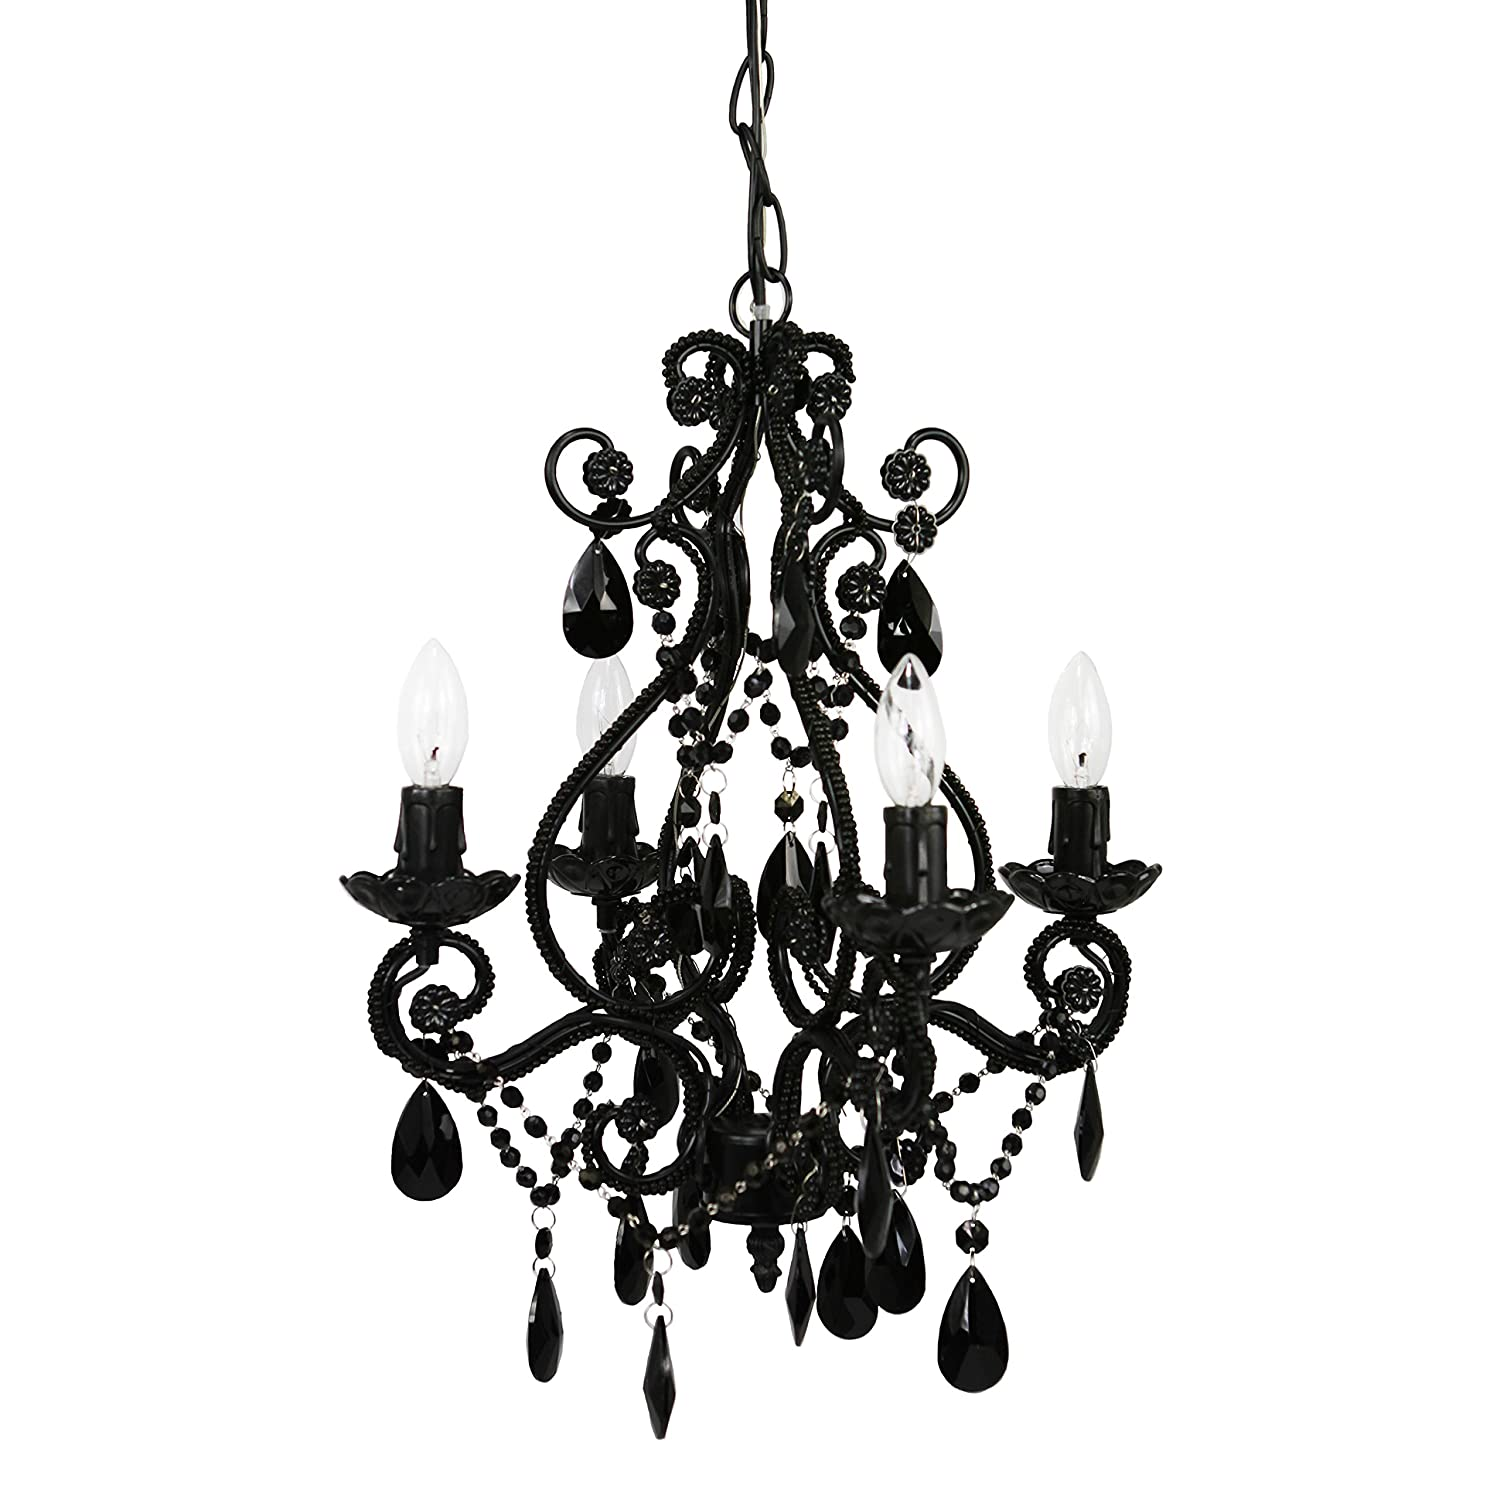 4 Bulb Mini Chandelier Black Onyx Home Kitchen How To Install A And Dimmer Switch Apps Directories